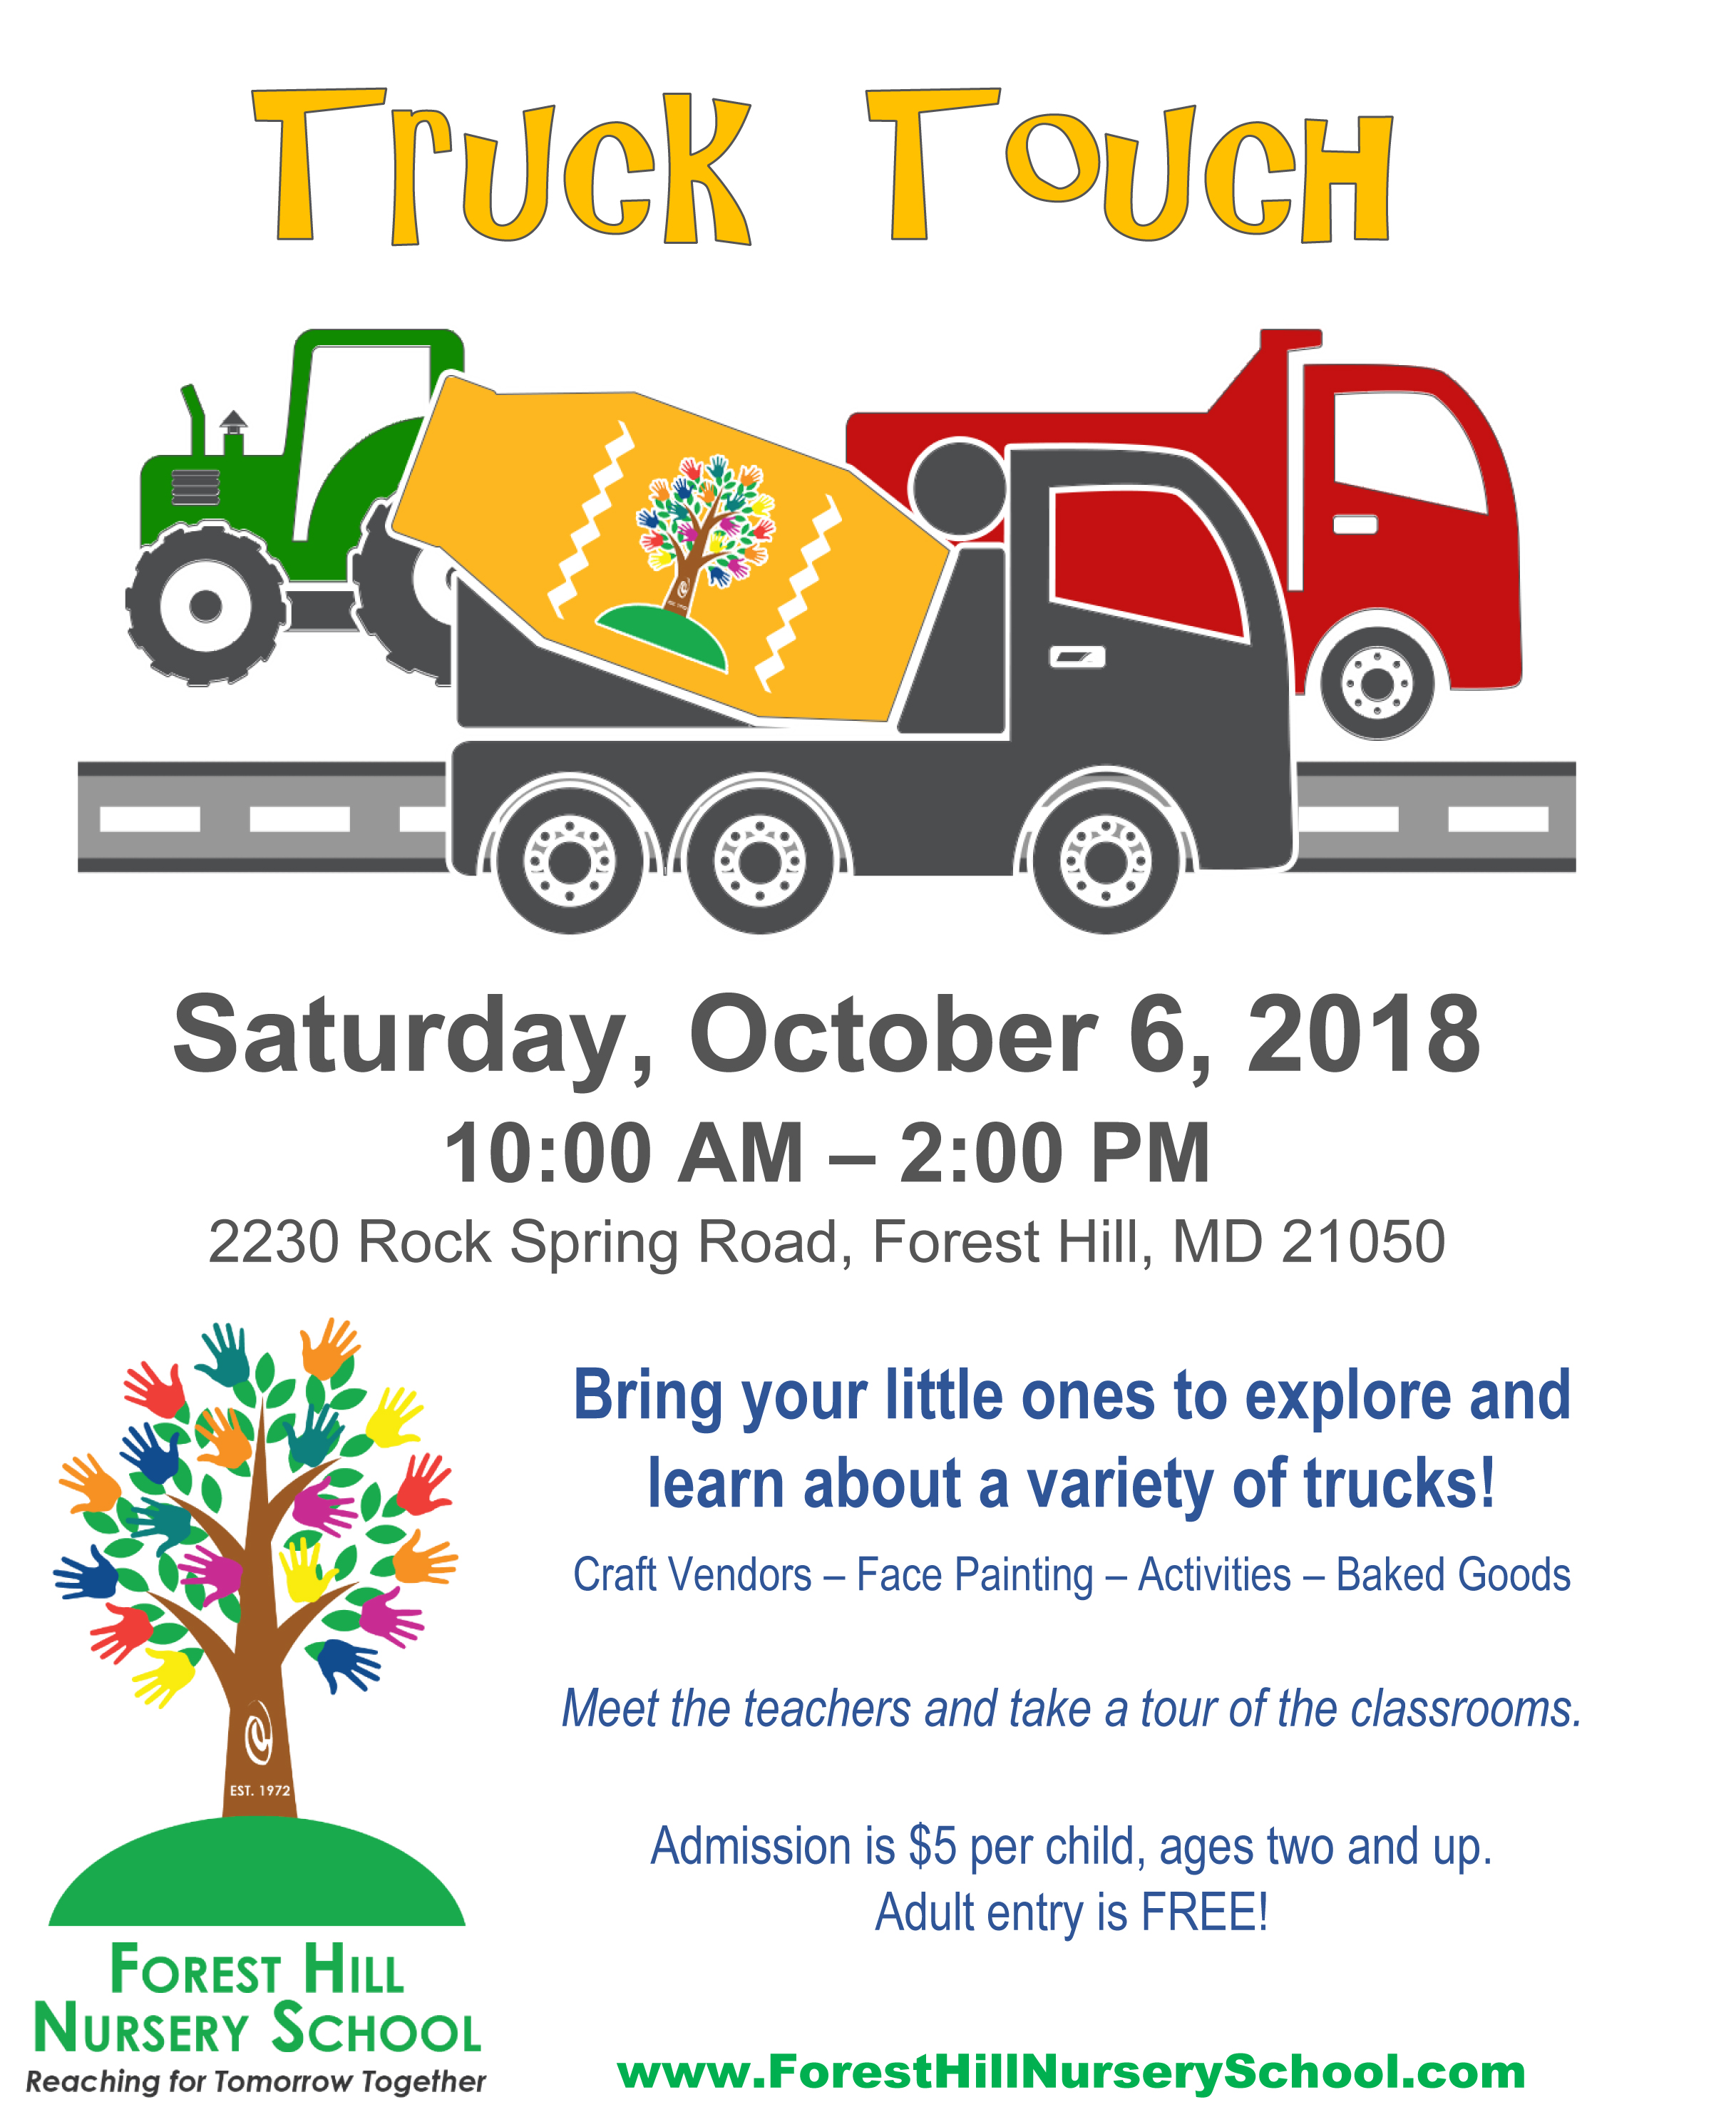 Forest Hill Nursery School Truck Touch – October 6